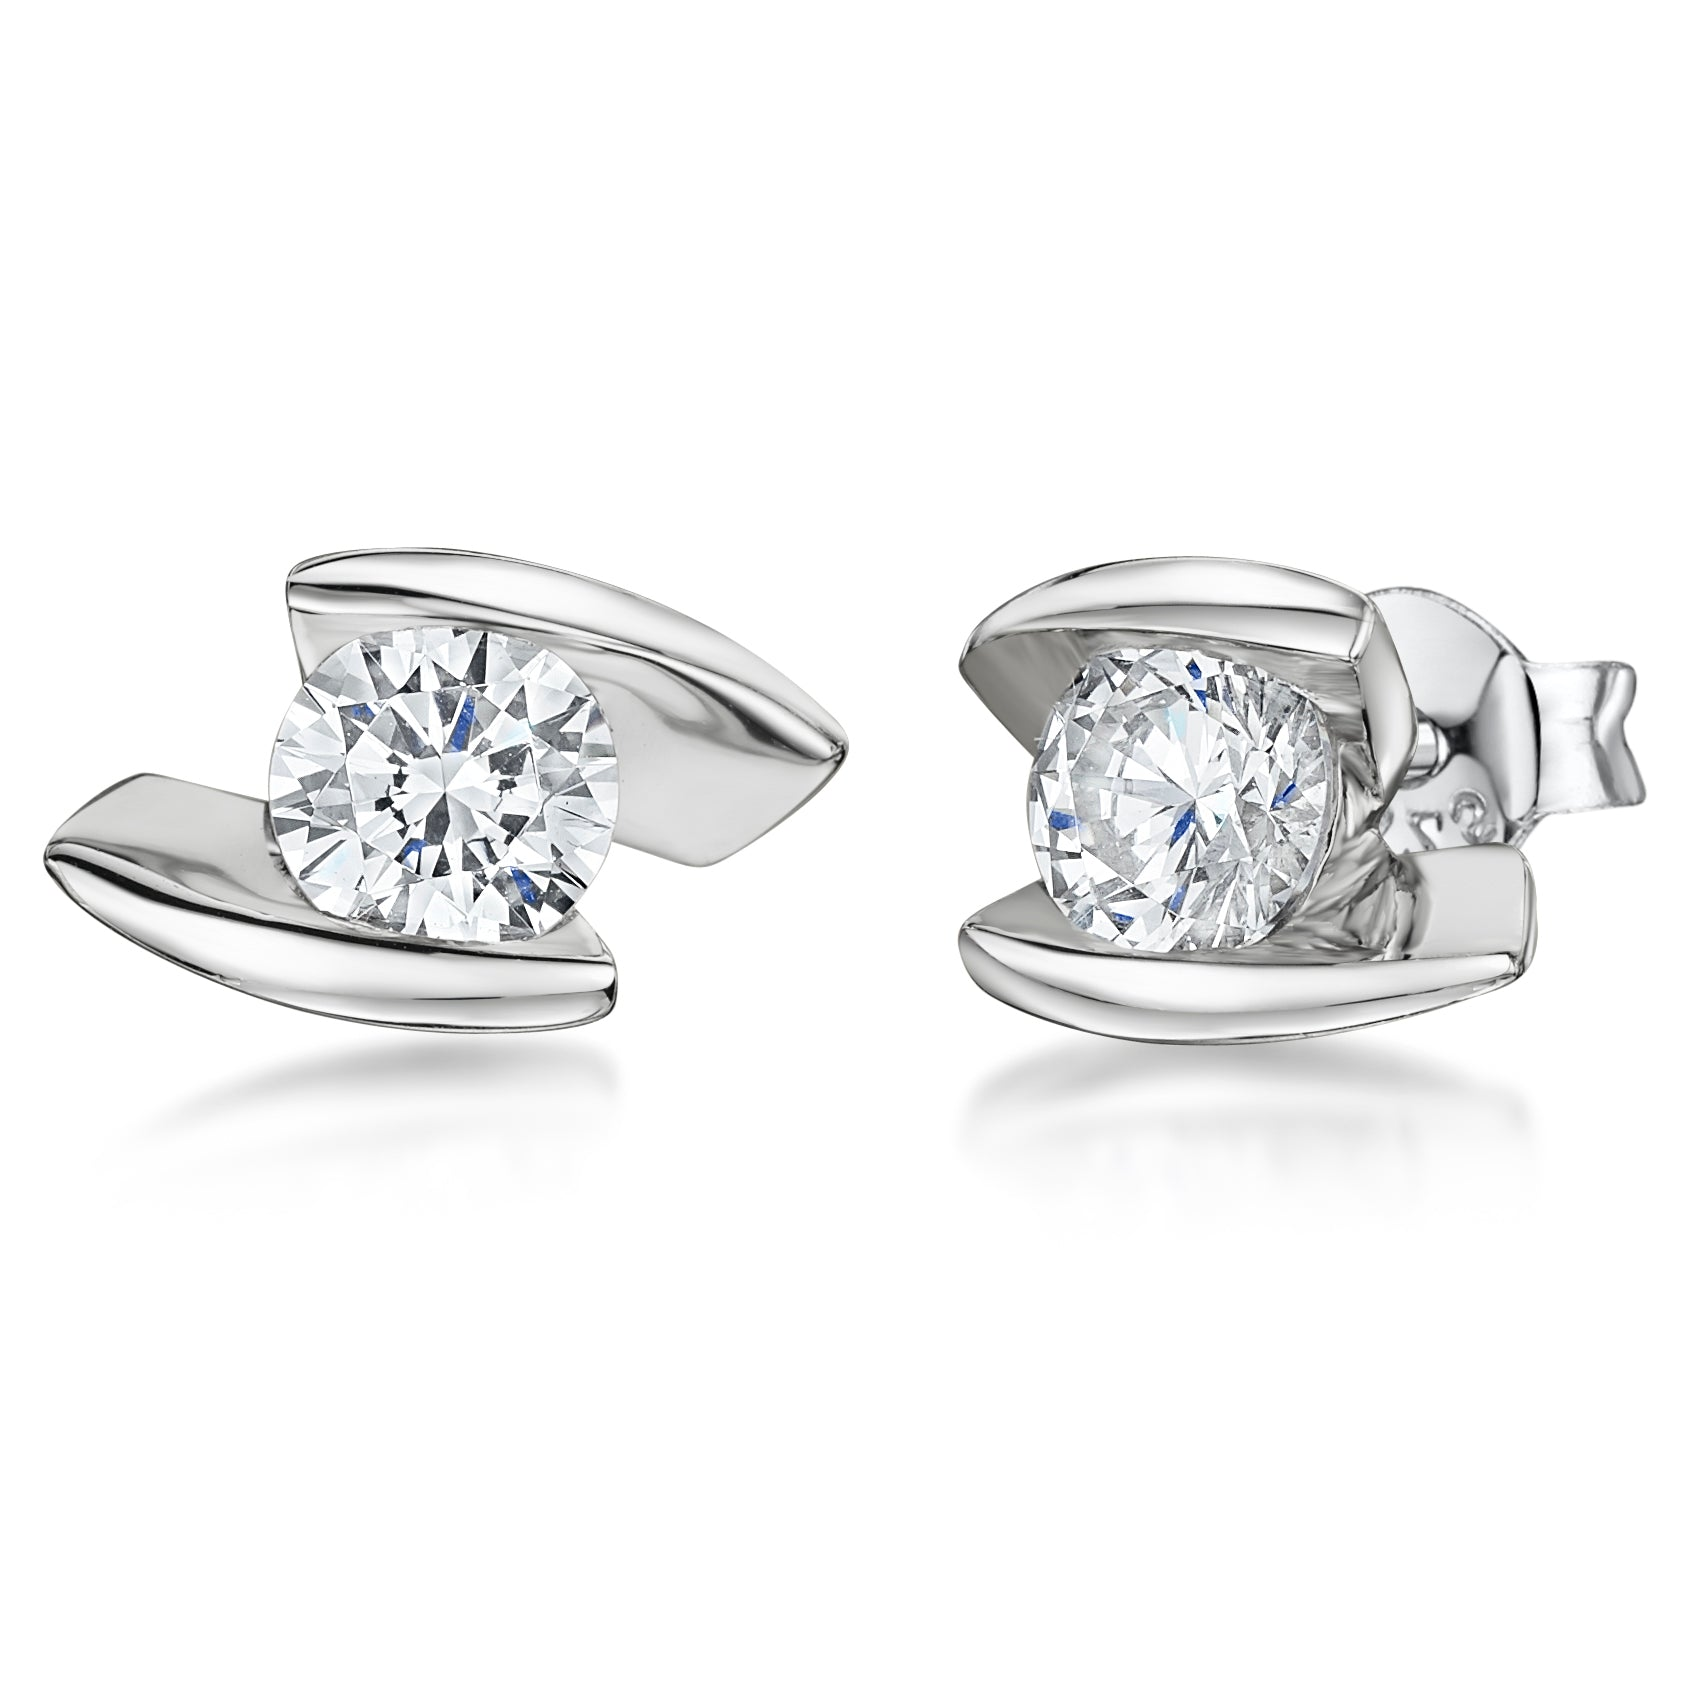 Sterling Silver Earrings With An Offset Bar and Tension Set Style Cubic Zirconia